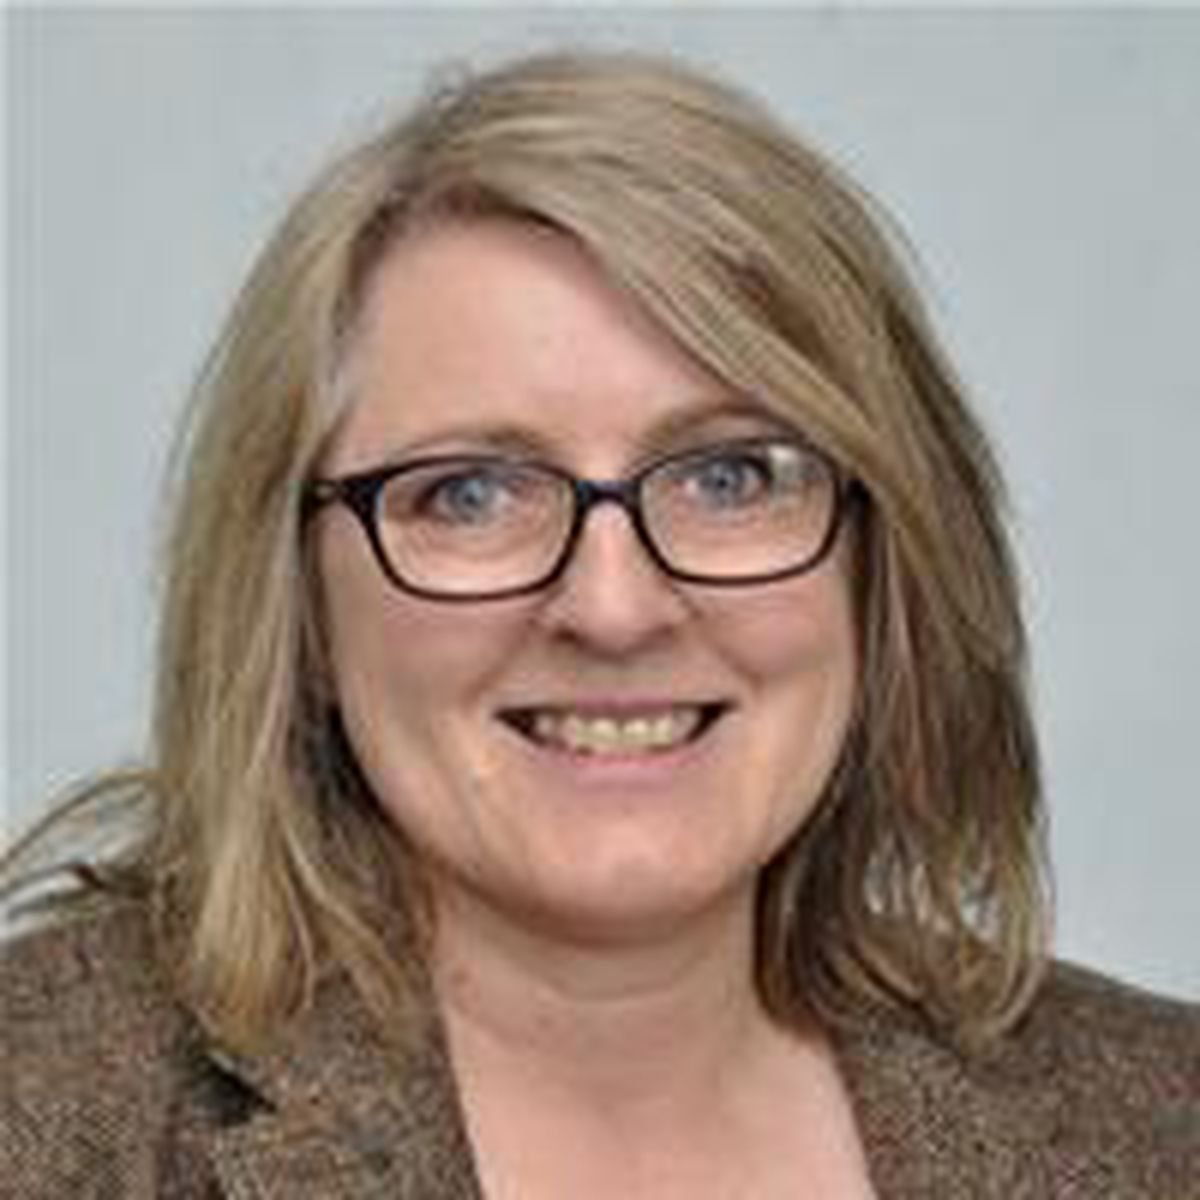 Ludlow East councillor Tracey Huffer